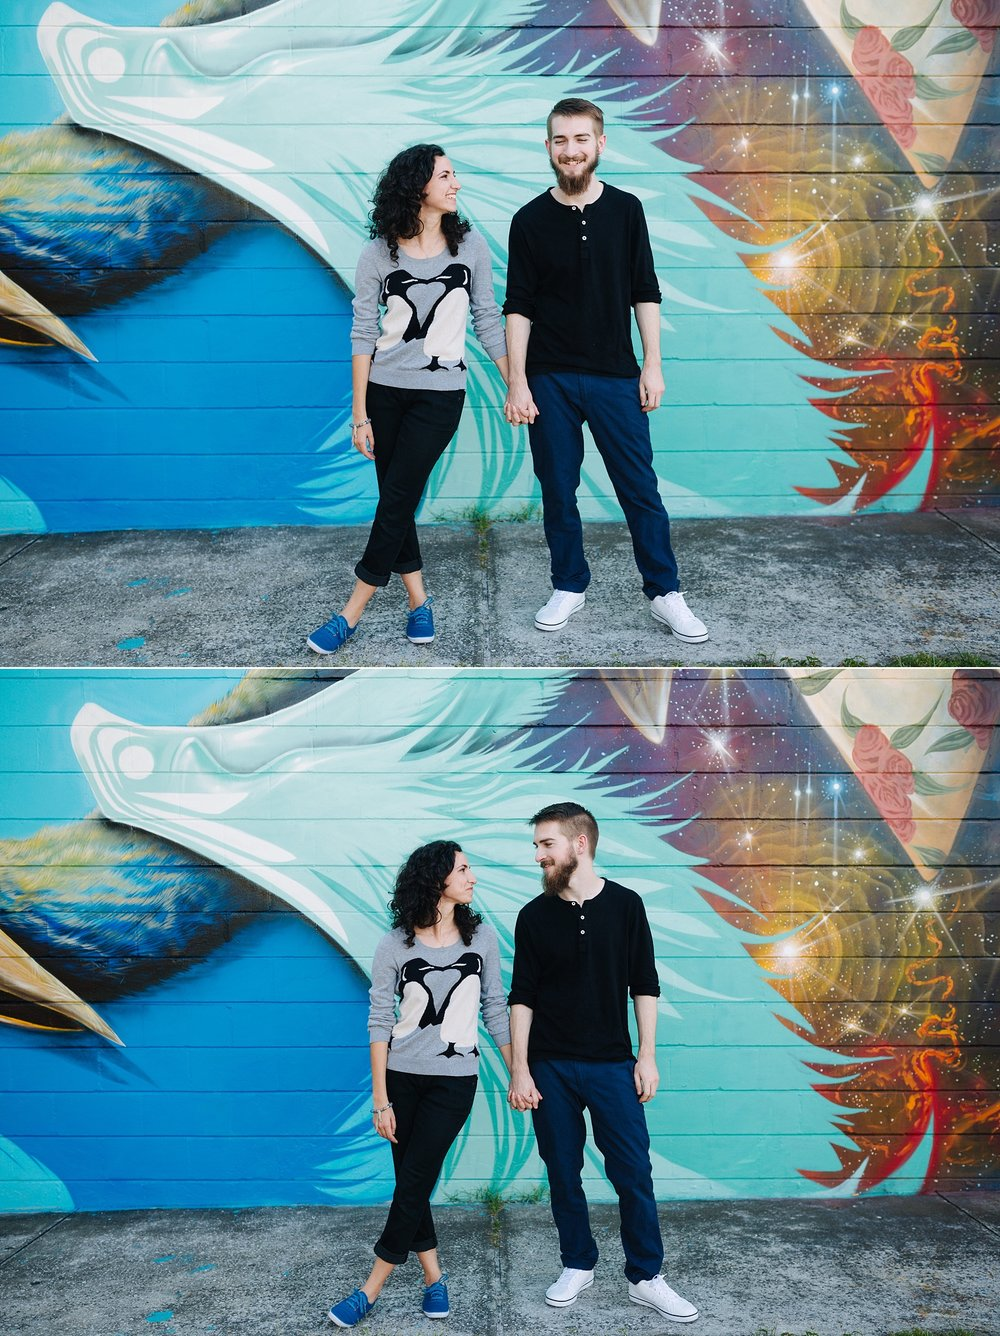 downtown st pete engagement session jake and katie photography tampa bay wedding photographer